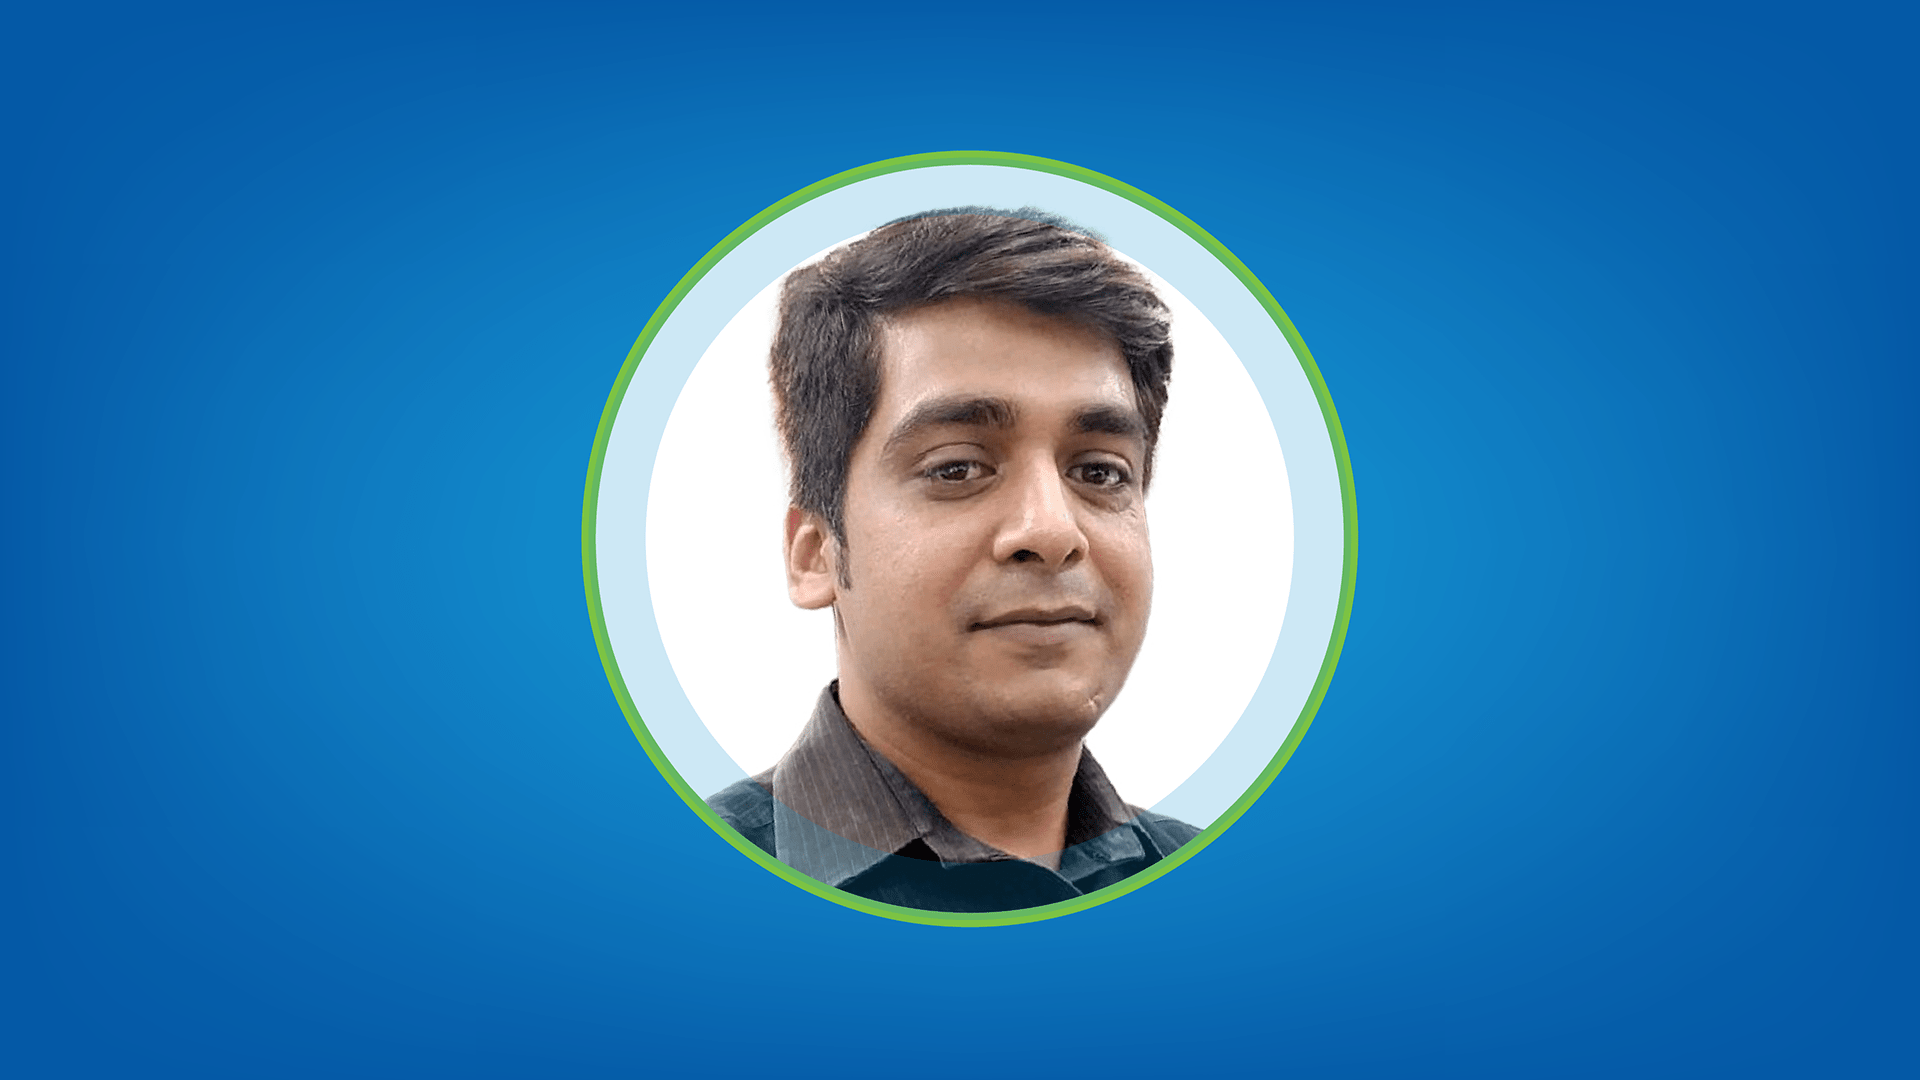 Prateek Prabhakar - From client to associate – my experience with Cerner